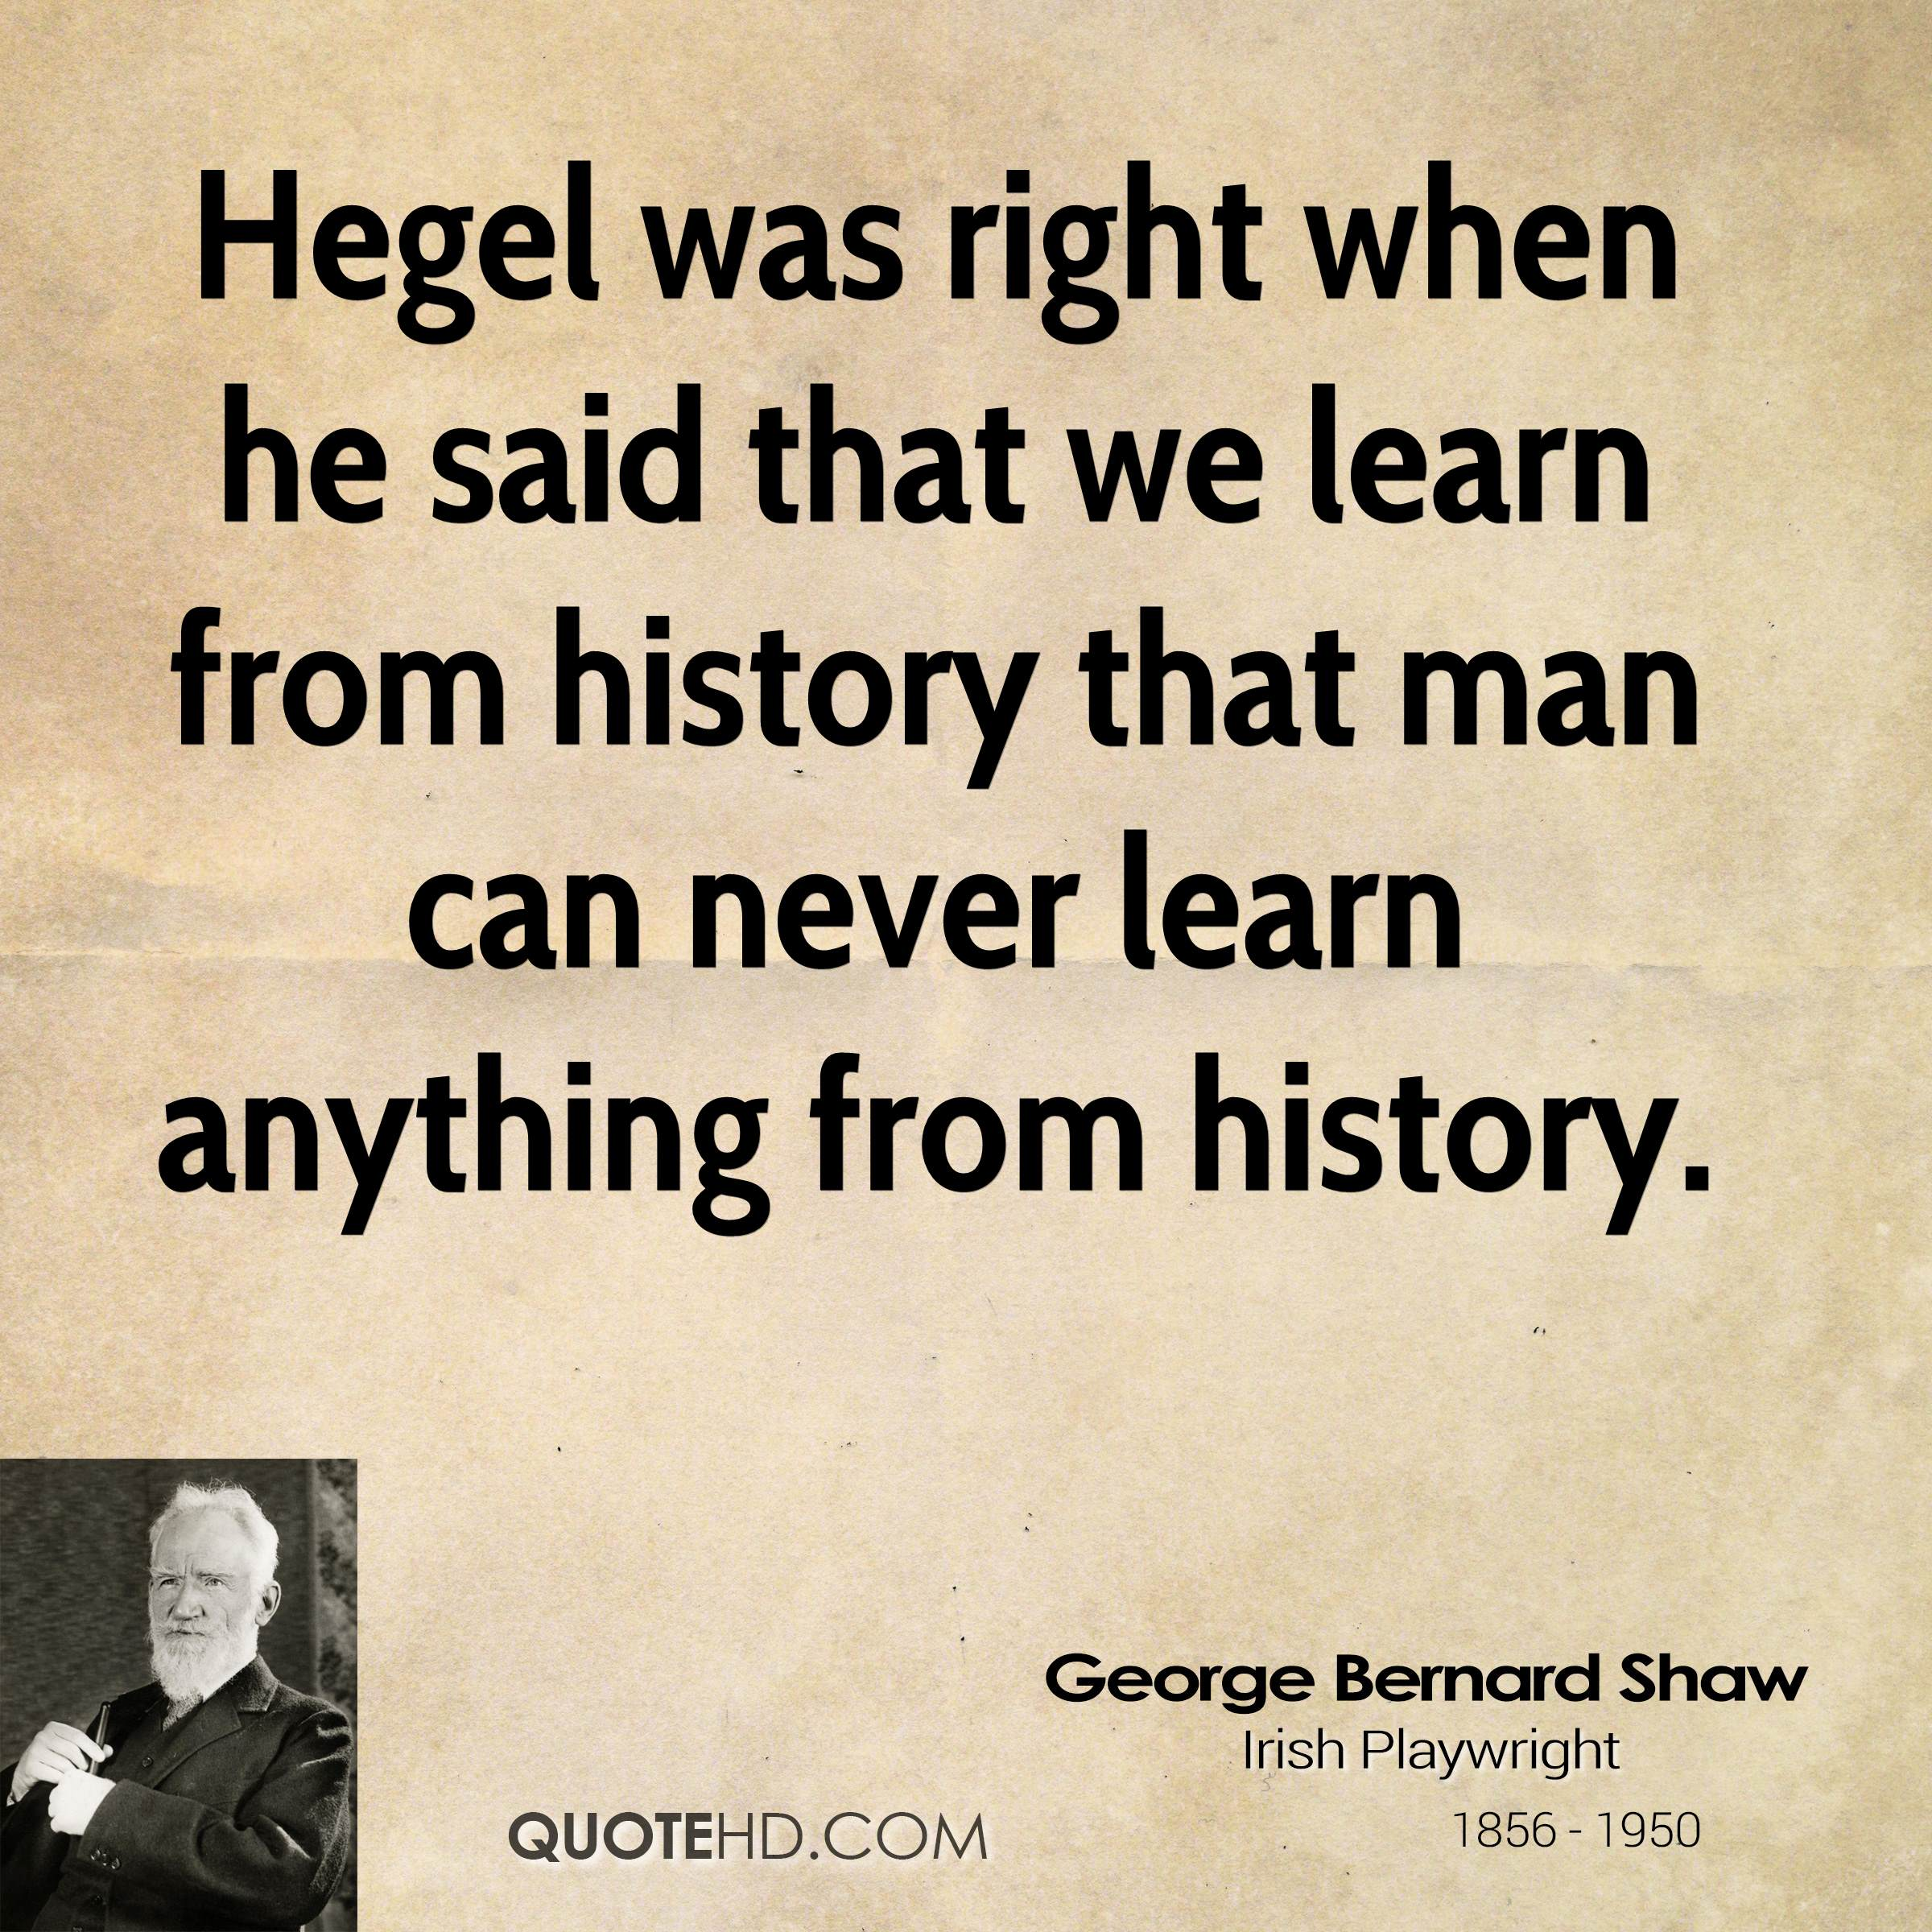 we learn from history We do not learn from history because we were brainwashed to believe that things do not happen again, taking literally the abstract dictum that you will not step into the same river again thus we learned to believe that similar things do not happen again, when they do, so obviously.